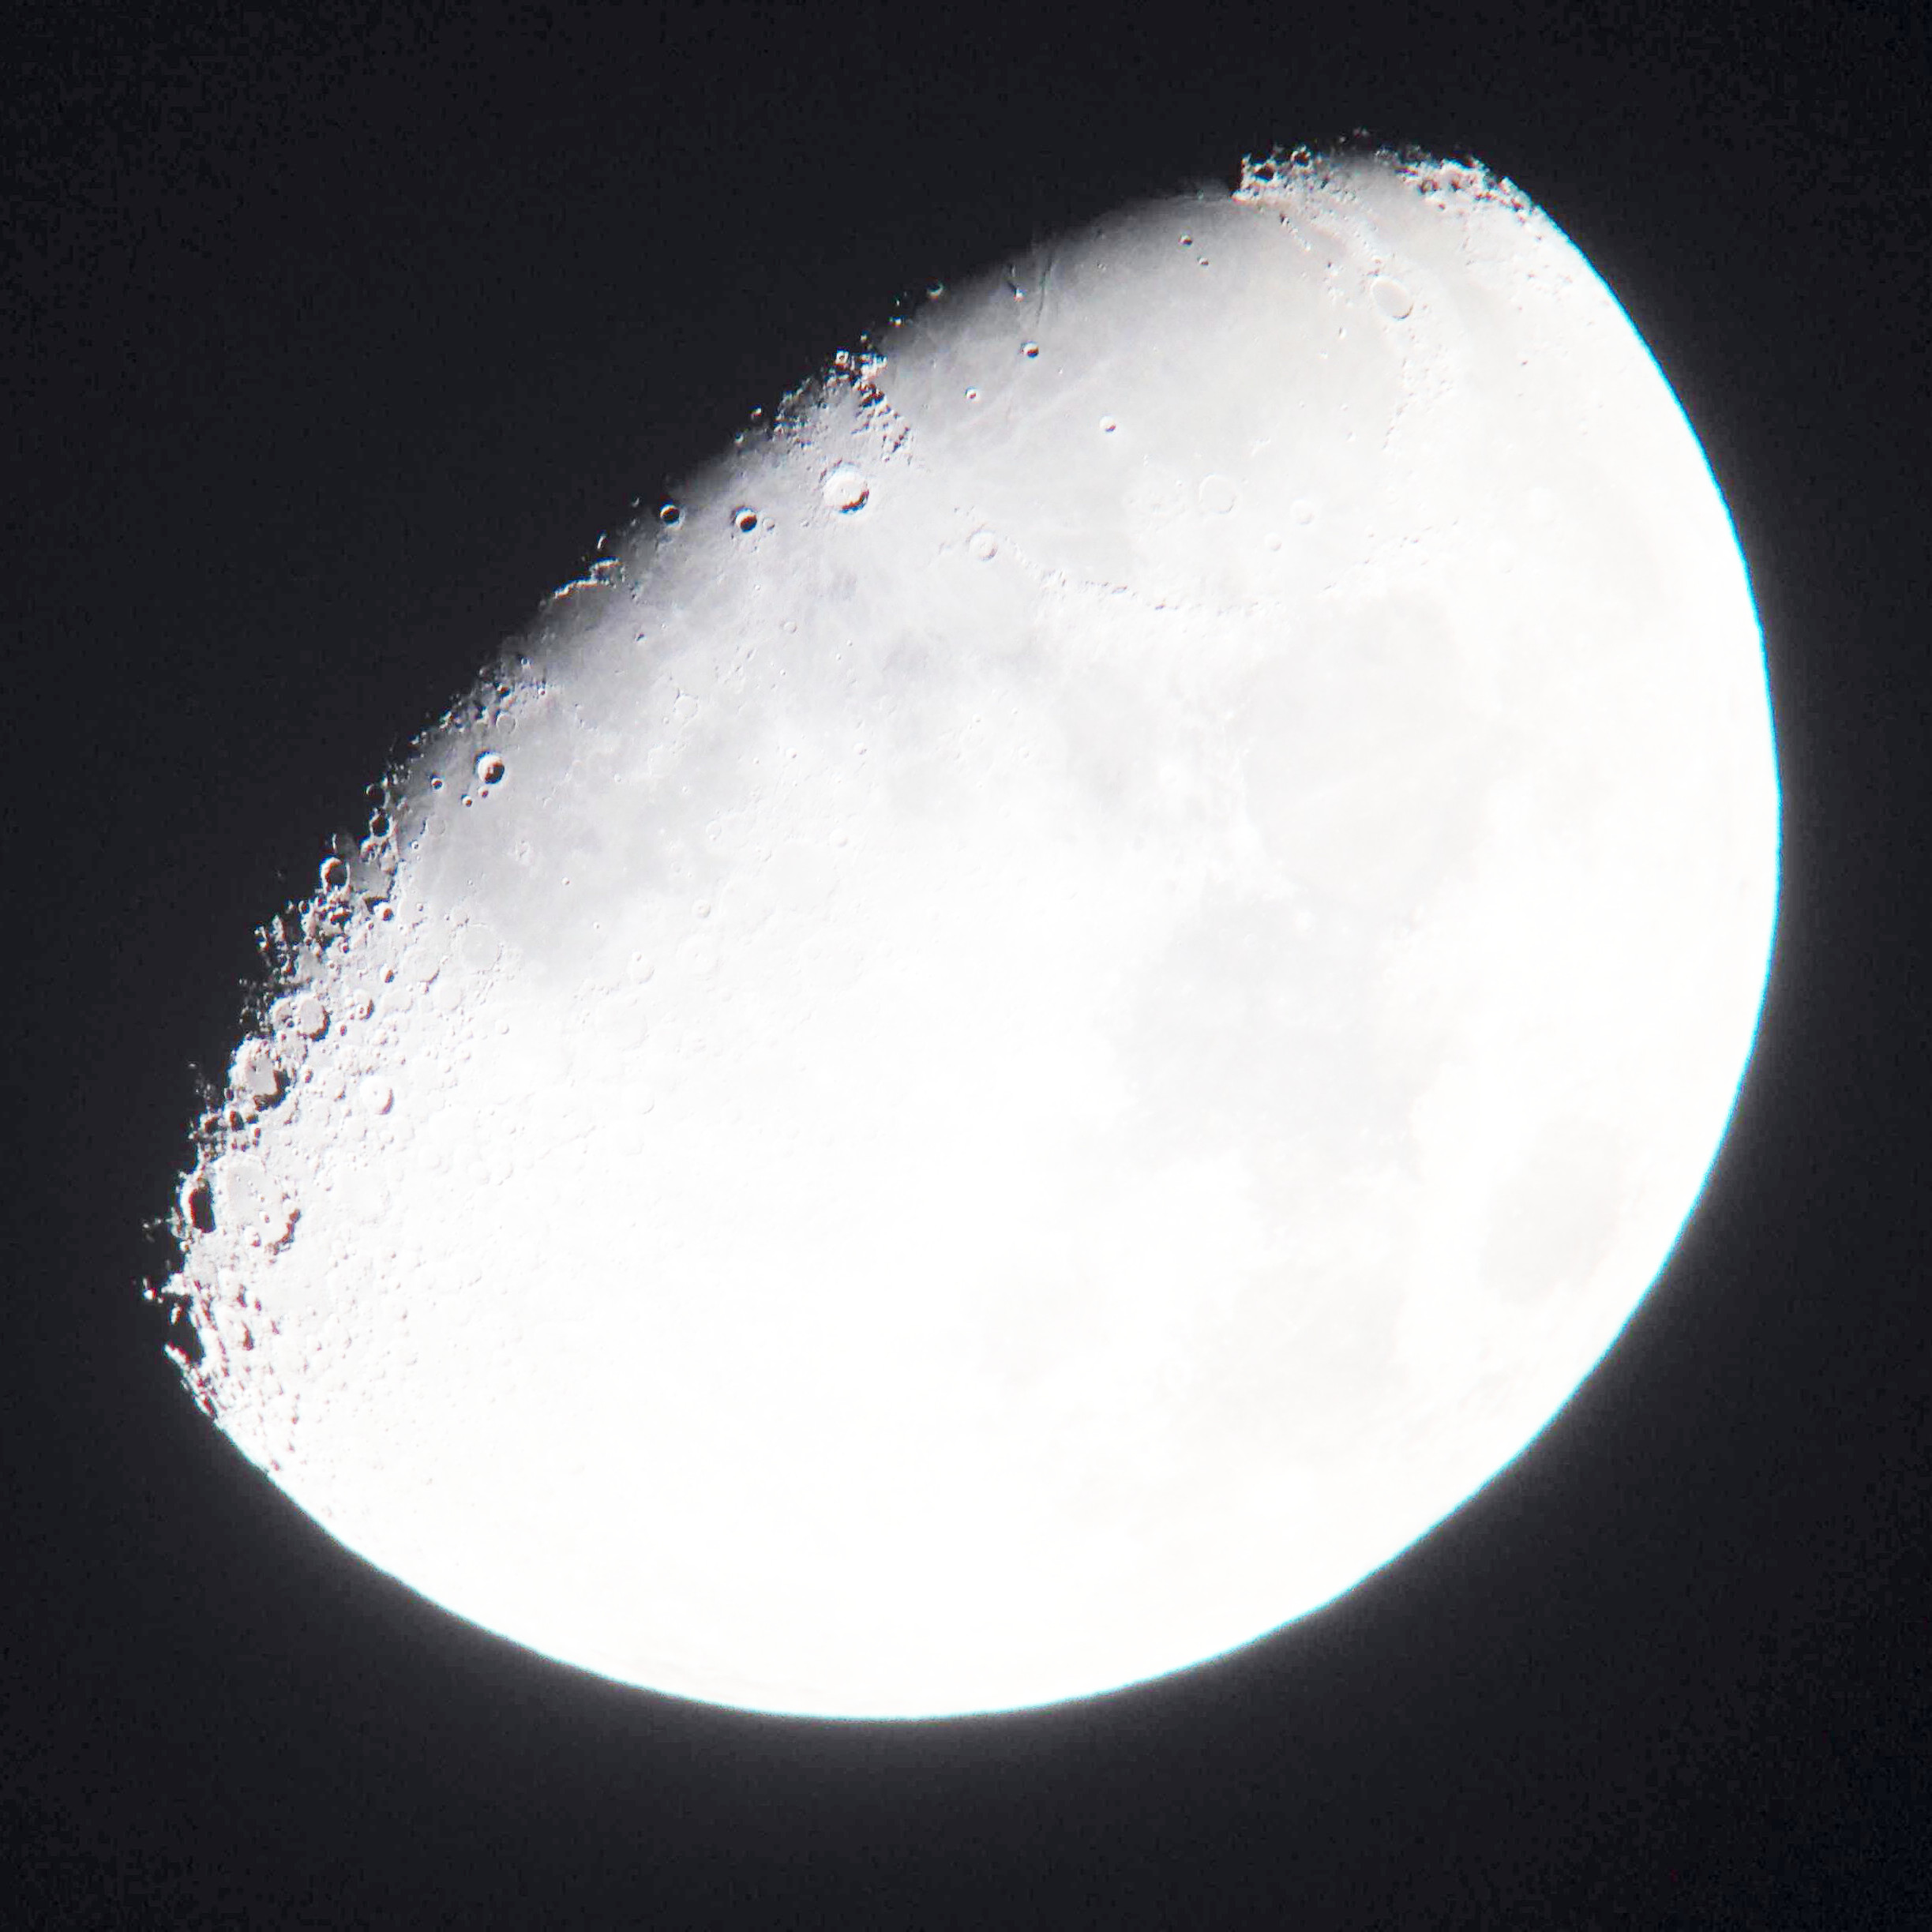 2014-11-01 waxing gibbous moon - light scatter